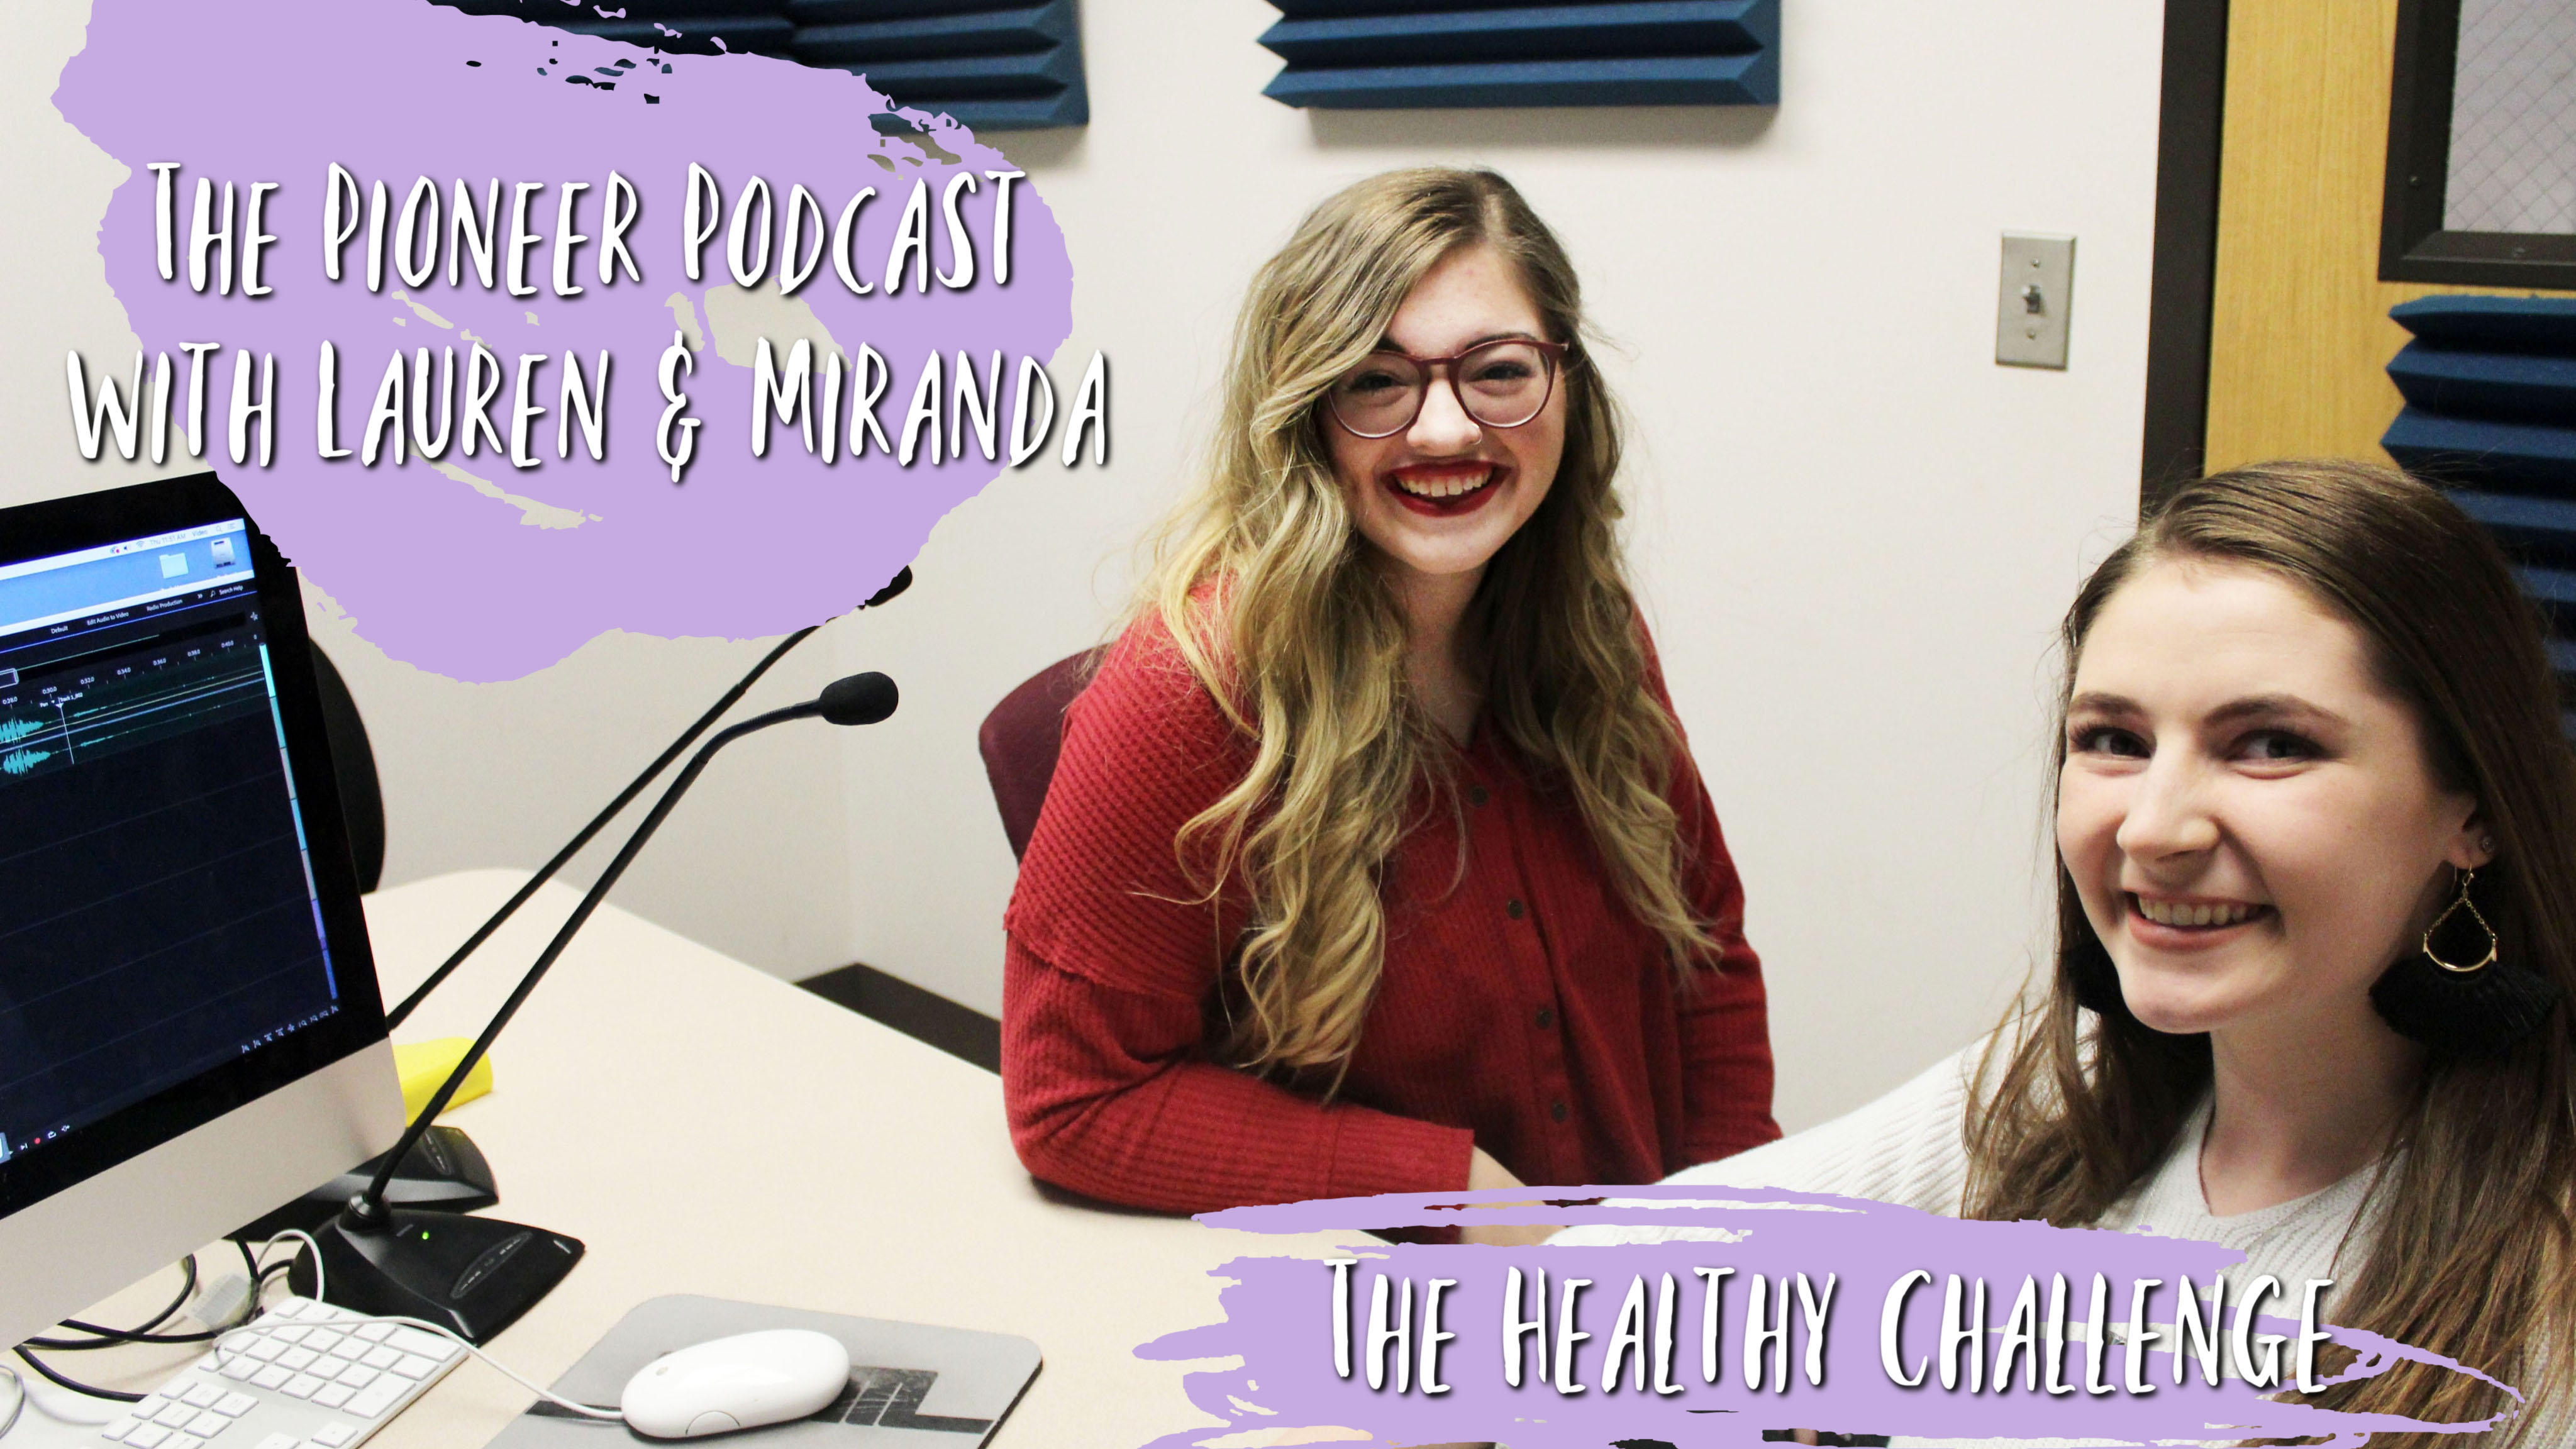 The Pioneer Podcast with Lauren and Miranda: The Healthy Challenge